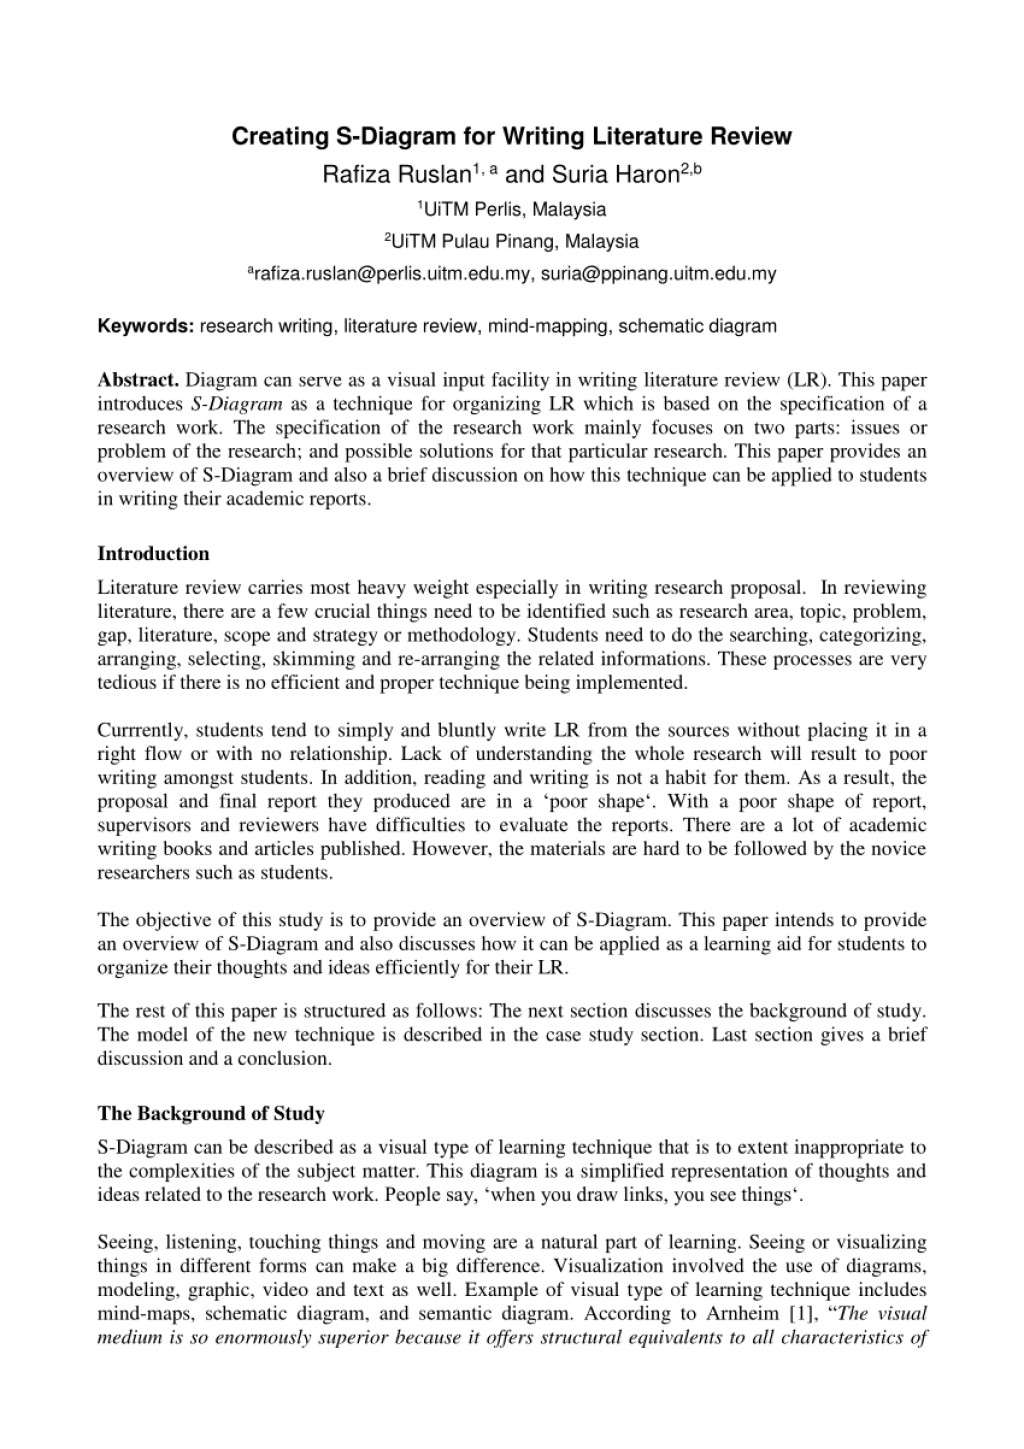 002 Research Paper How To Write Literature Review In Unbelievable A Pdf For Youtube Qualitative Large